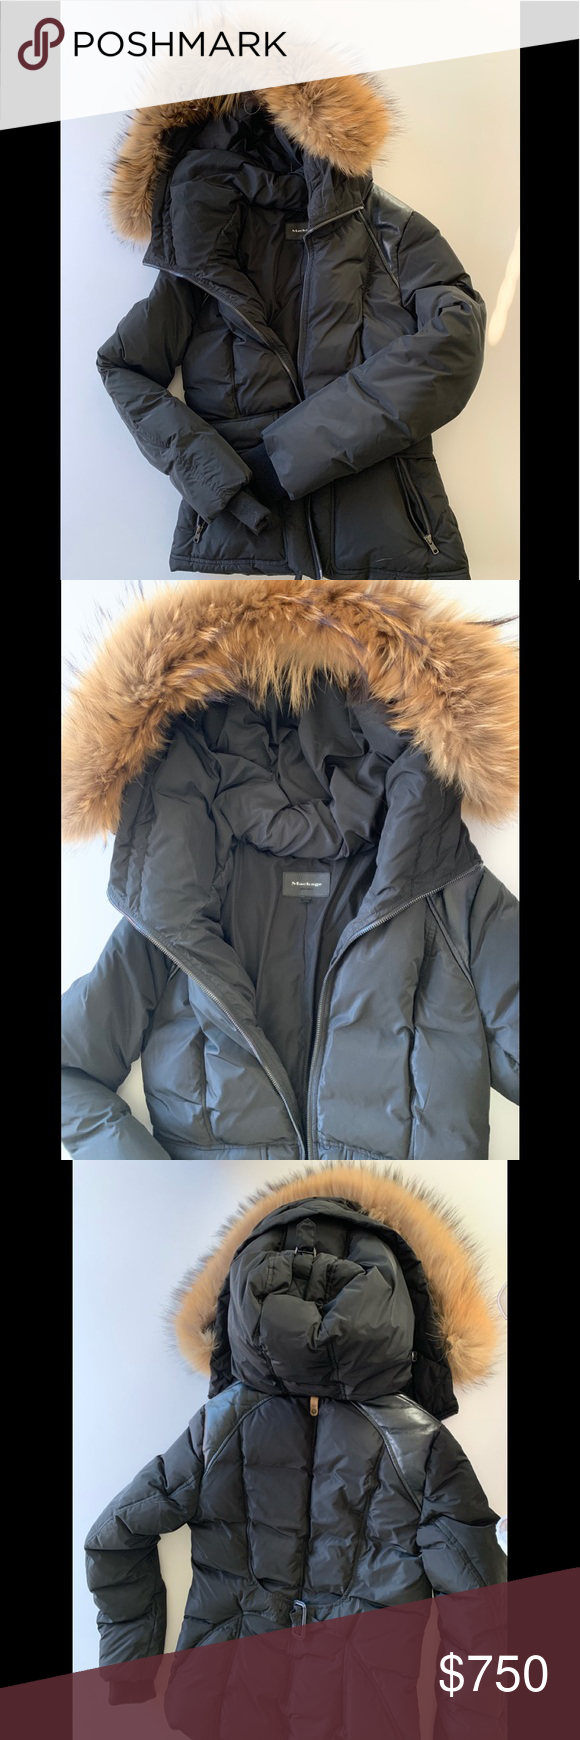 MACKAGE Coat w/ Fur Lined Hood & Leather Shoulder (With